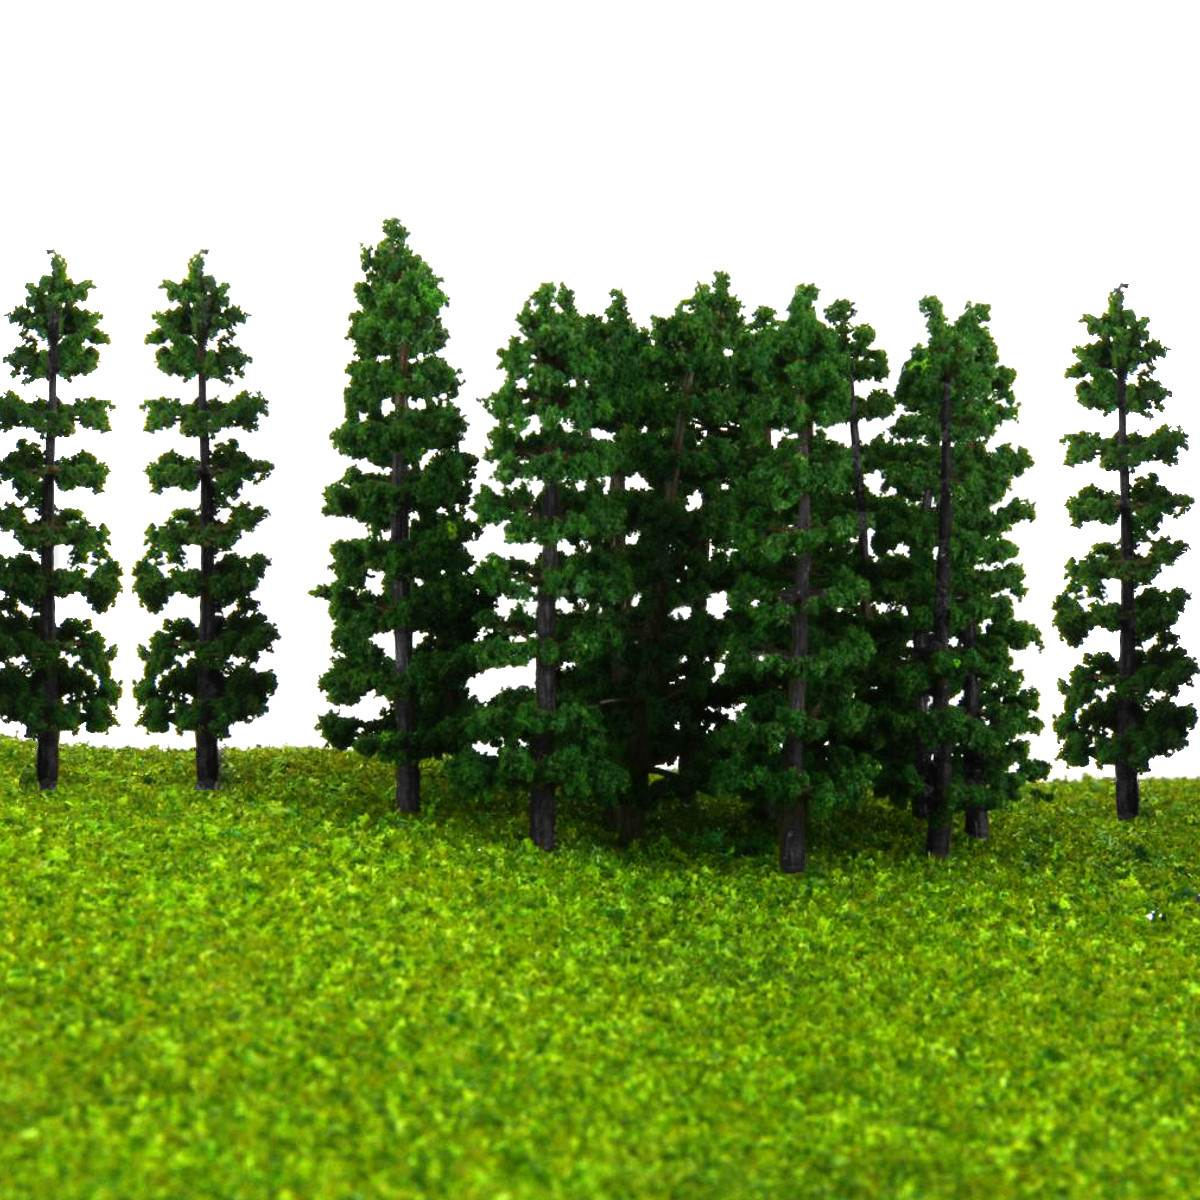 20Pcs/set 1/100 Green Fir Trees Model Train Railway Forest Street Scenery Layout For Sand Table Landscape Model Decor Toys forest railway throw wall art tapestry